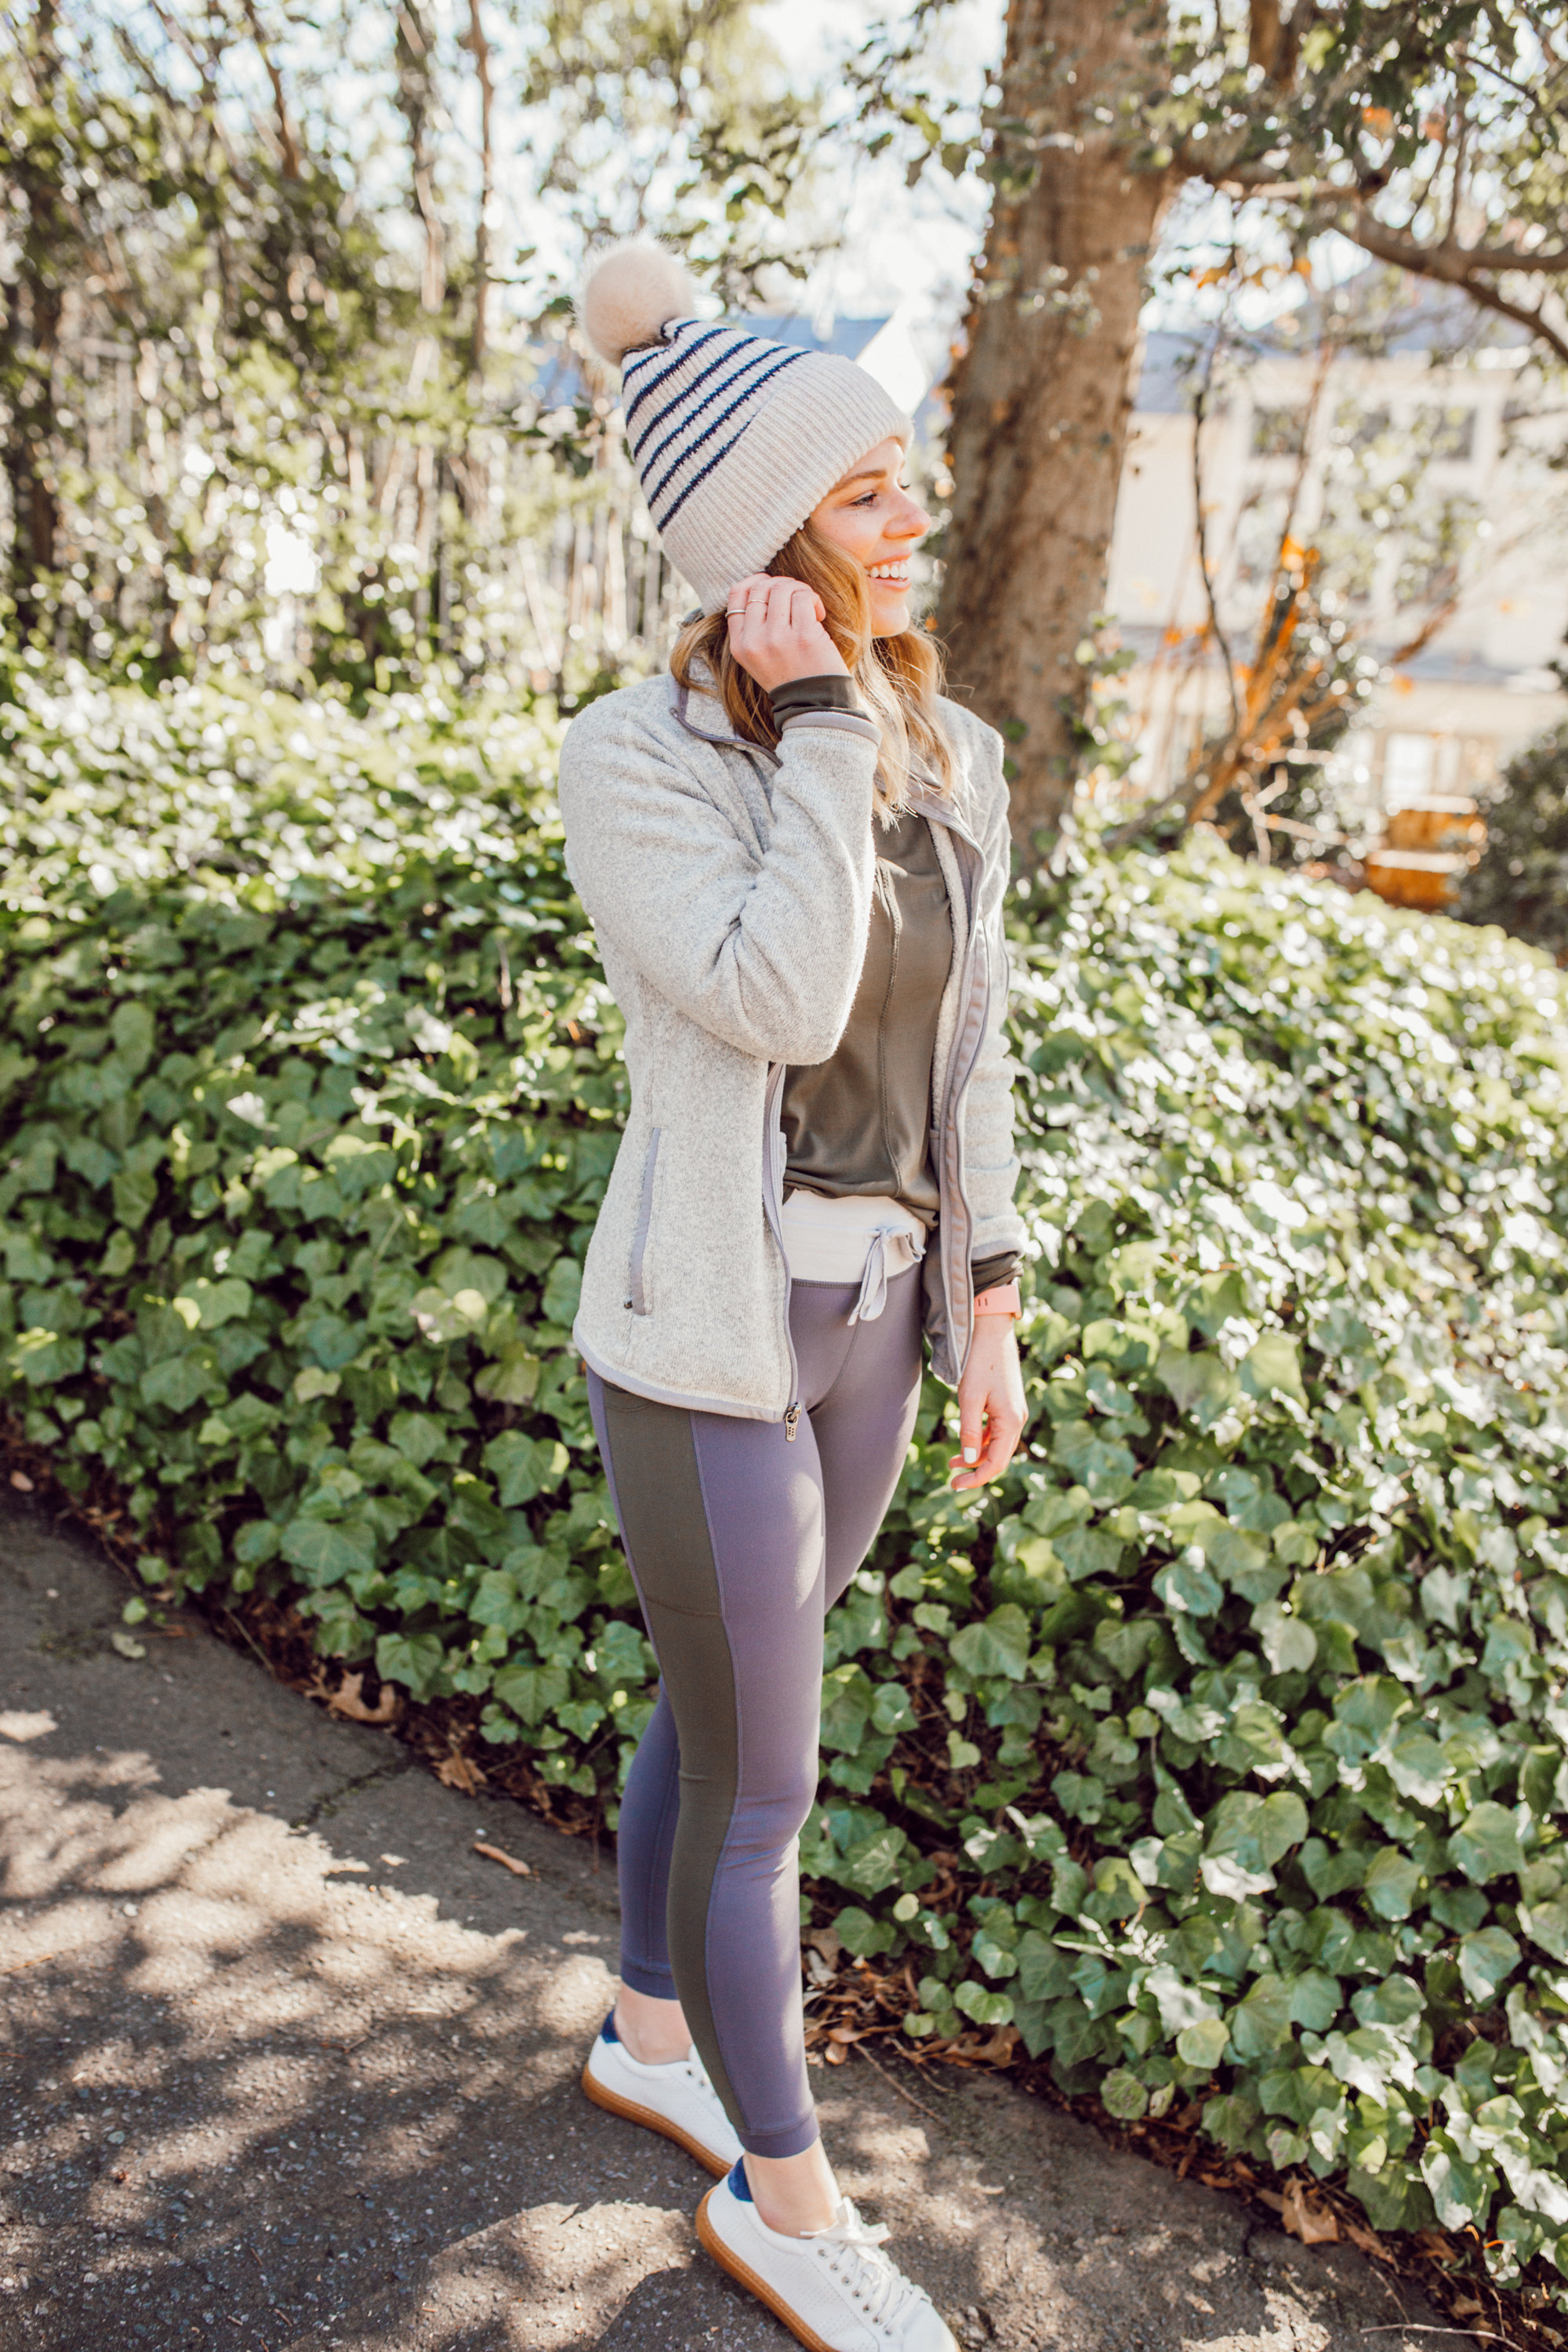 FWTFL vs BBG: How they compare and overall thoughts on the two programs | Winter Activewear | Louella Reese